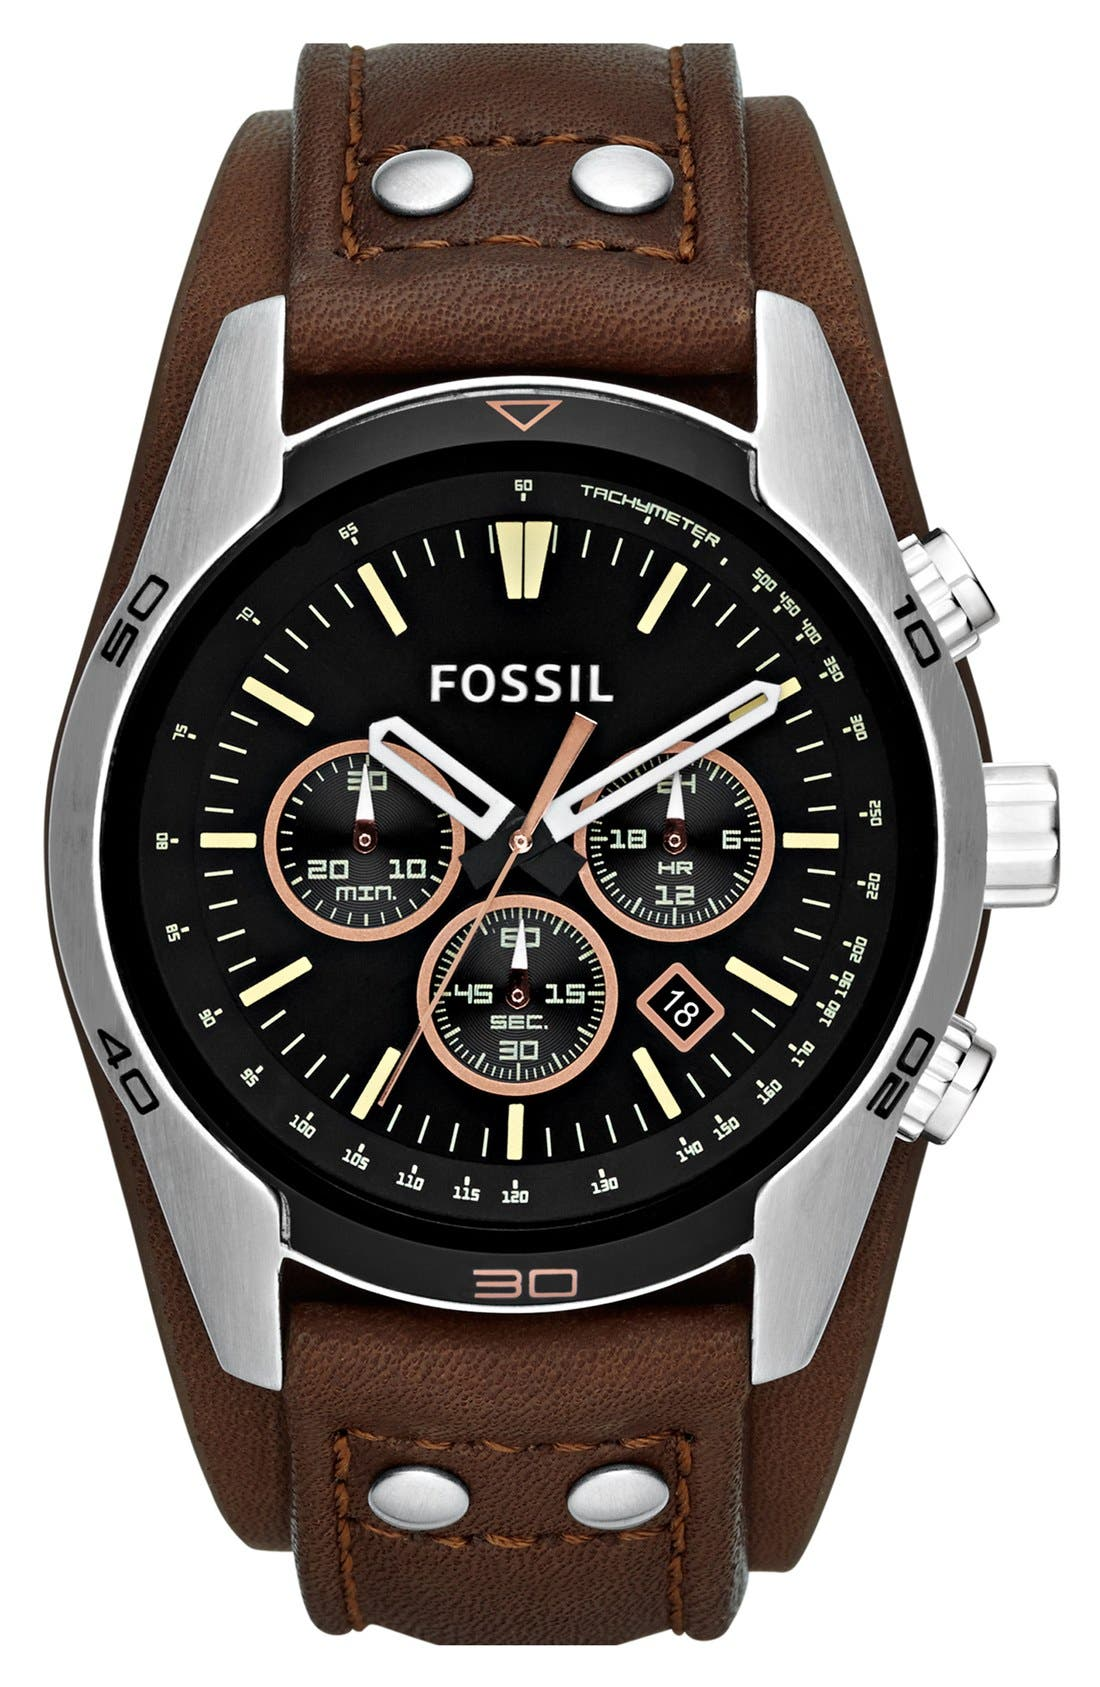 FOSSIL 'Sport' Chronograph Leather Cuff Watch, 44mm, Main, color, BROWN